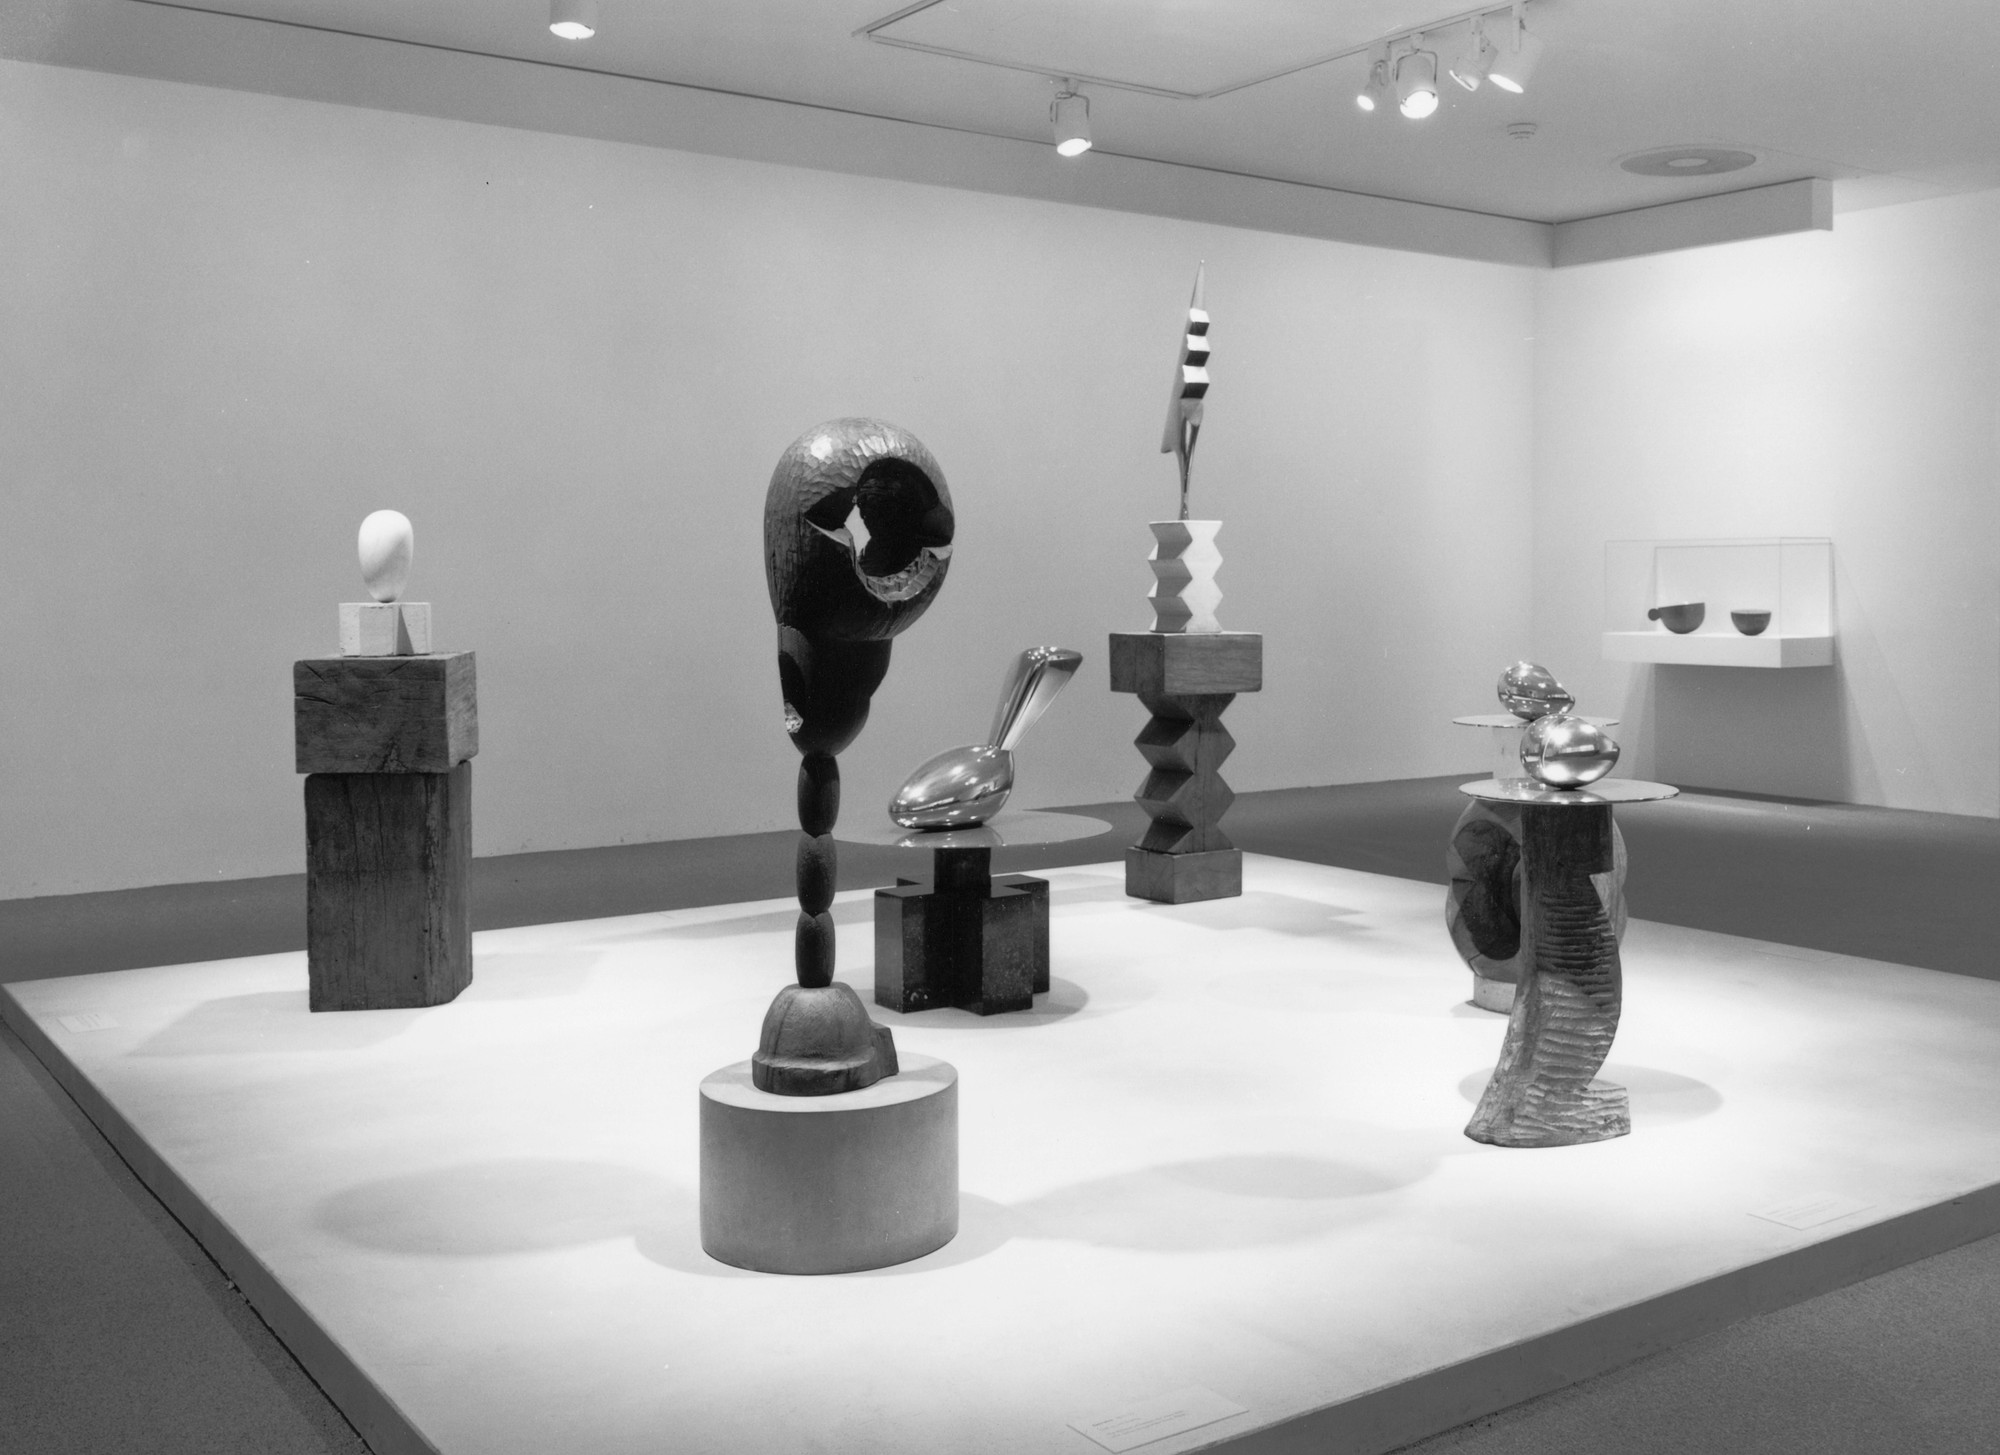 Installation view of Brancusi: Selected Masterworks from the Musée National d'Art Moderne and The Museum of Modern Art, New York at The Museum of Modern Art, New York. Photo: Katherine Keller